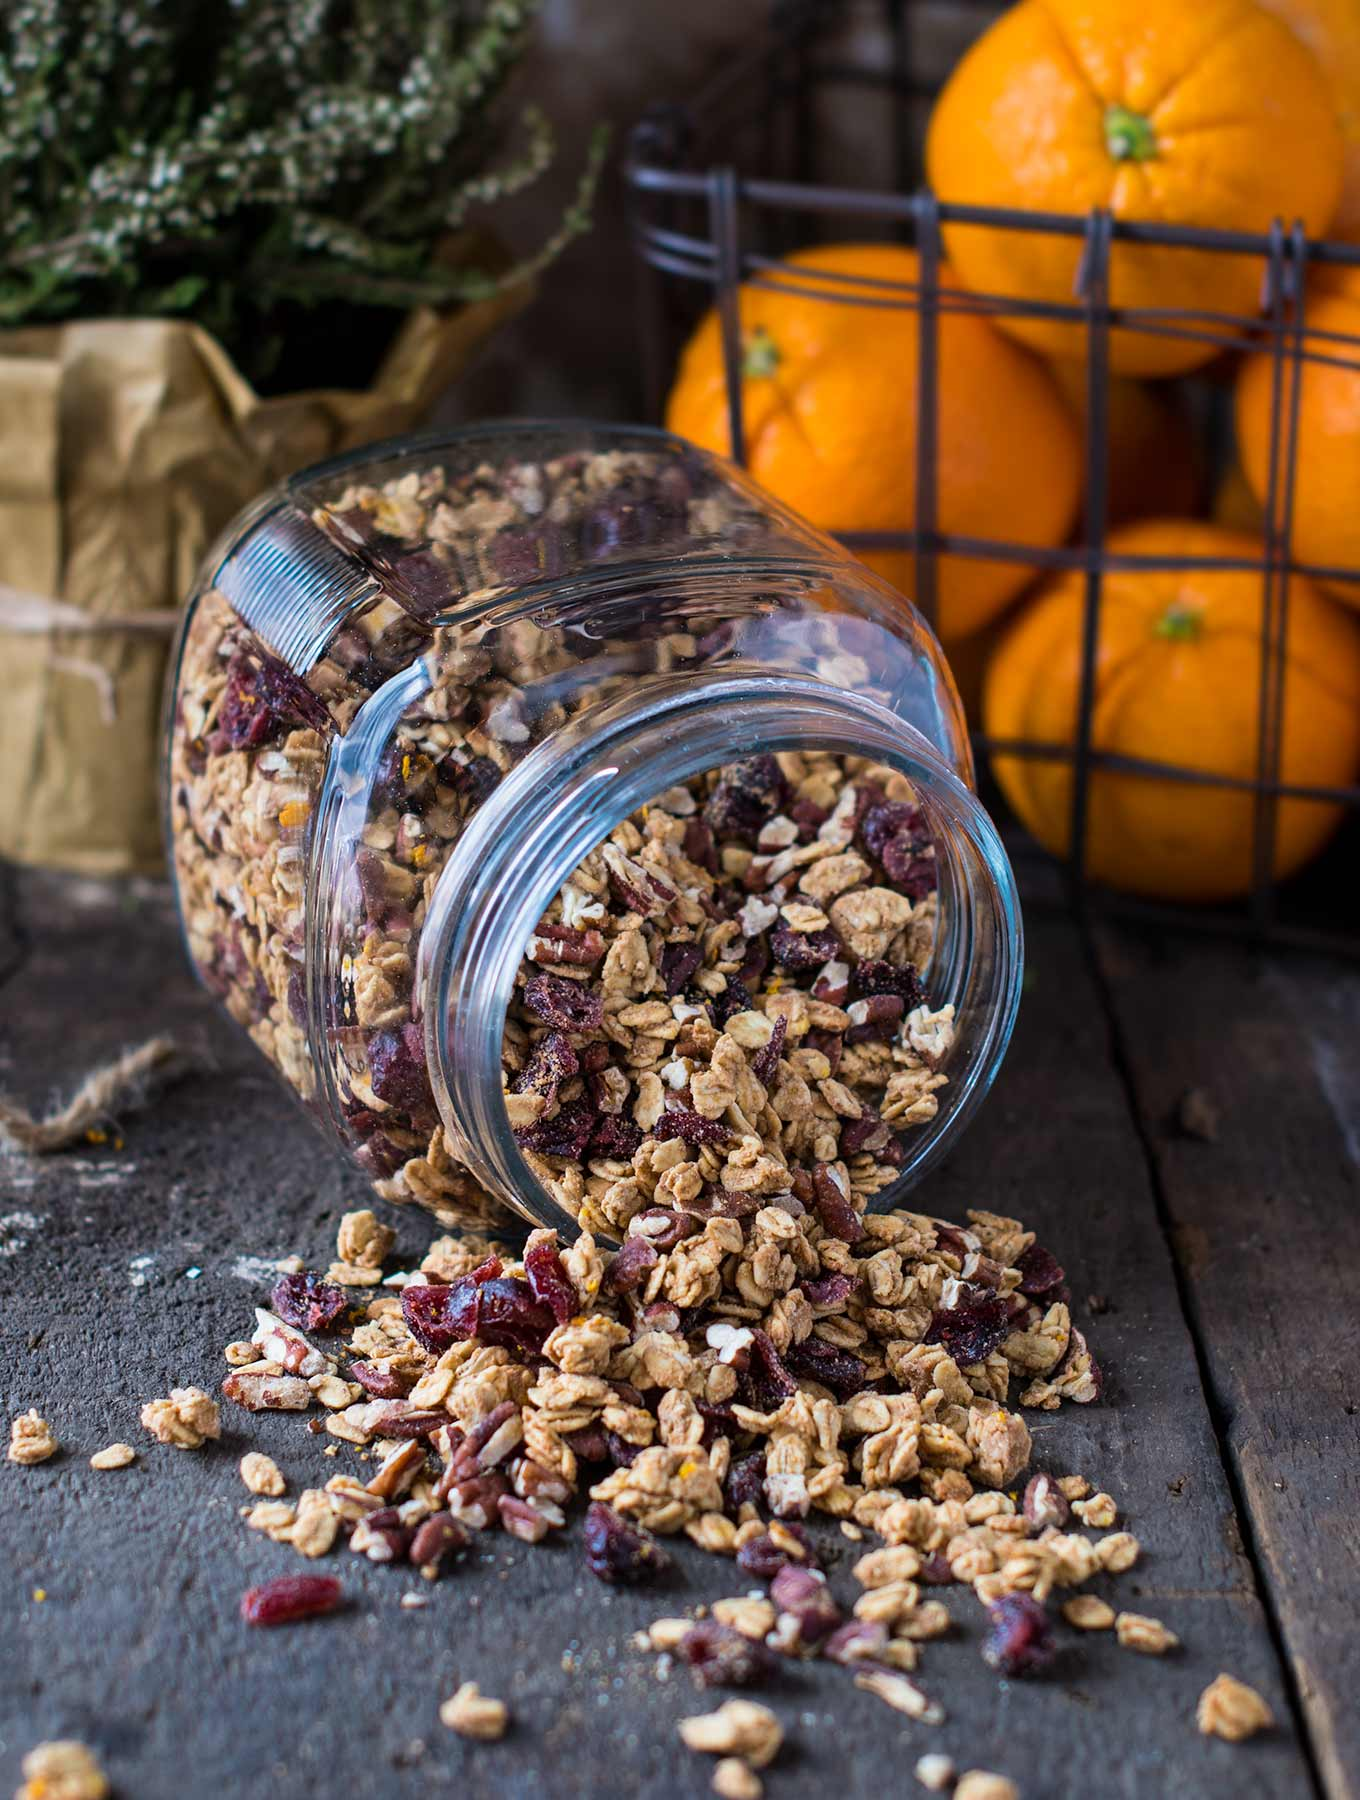 Maple cardamom granola in a glass jar